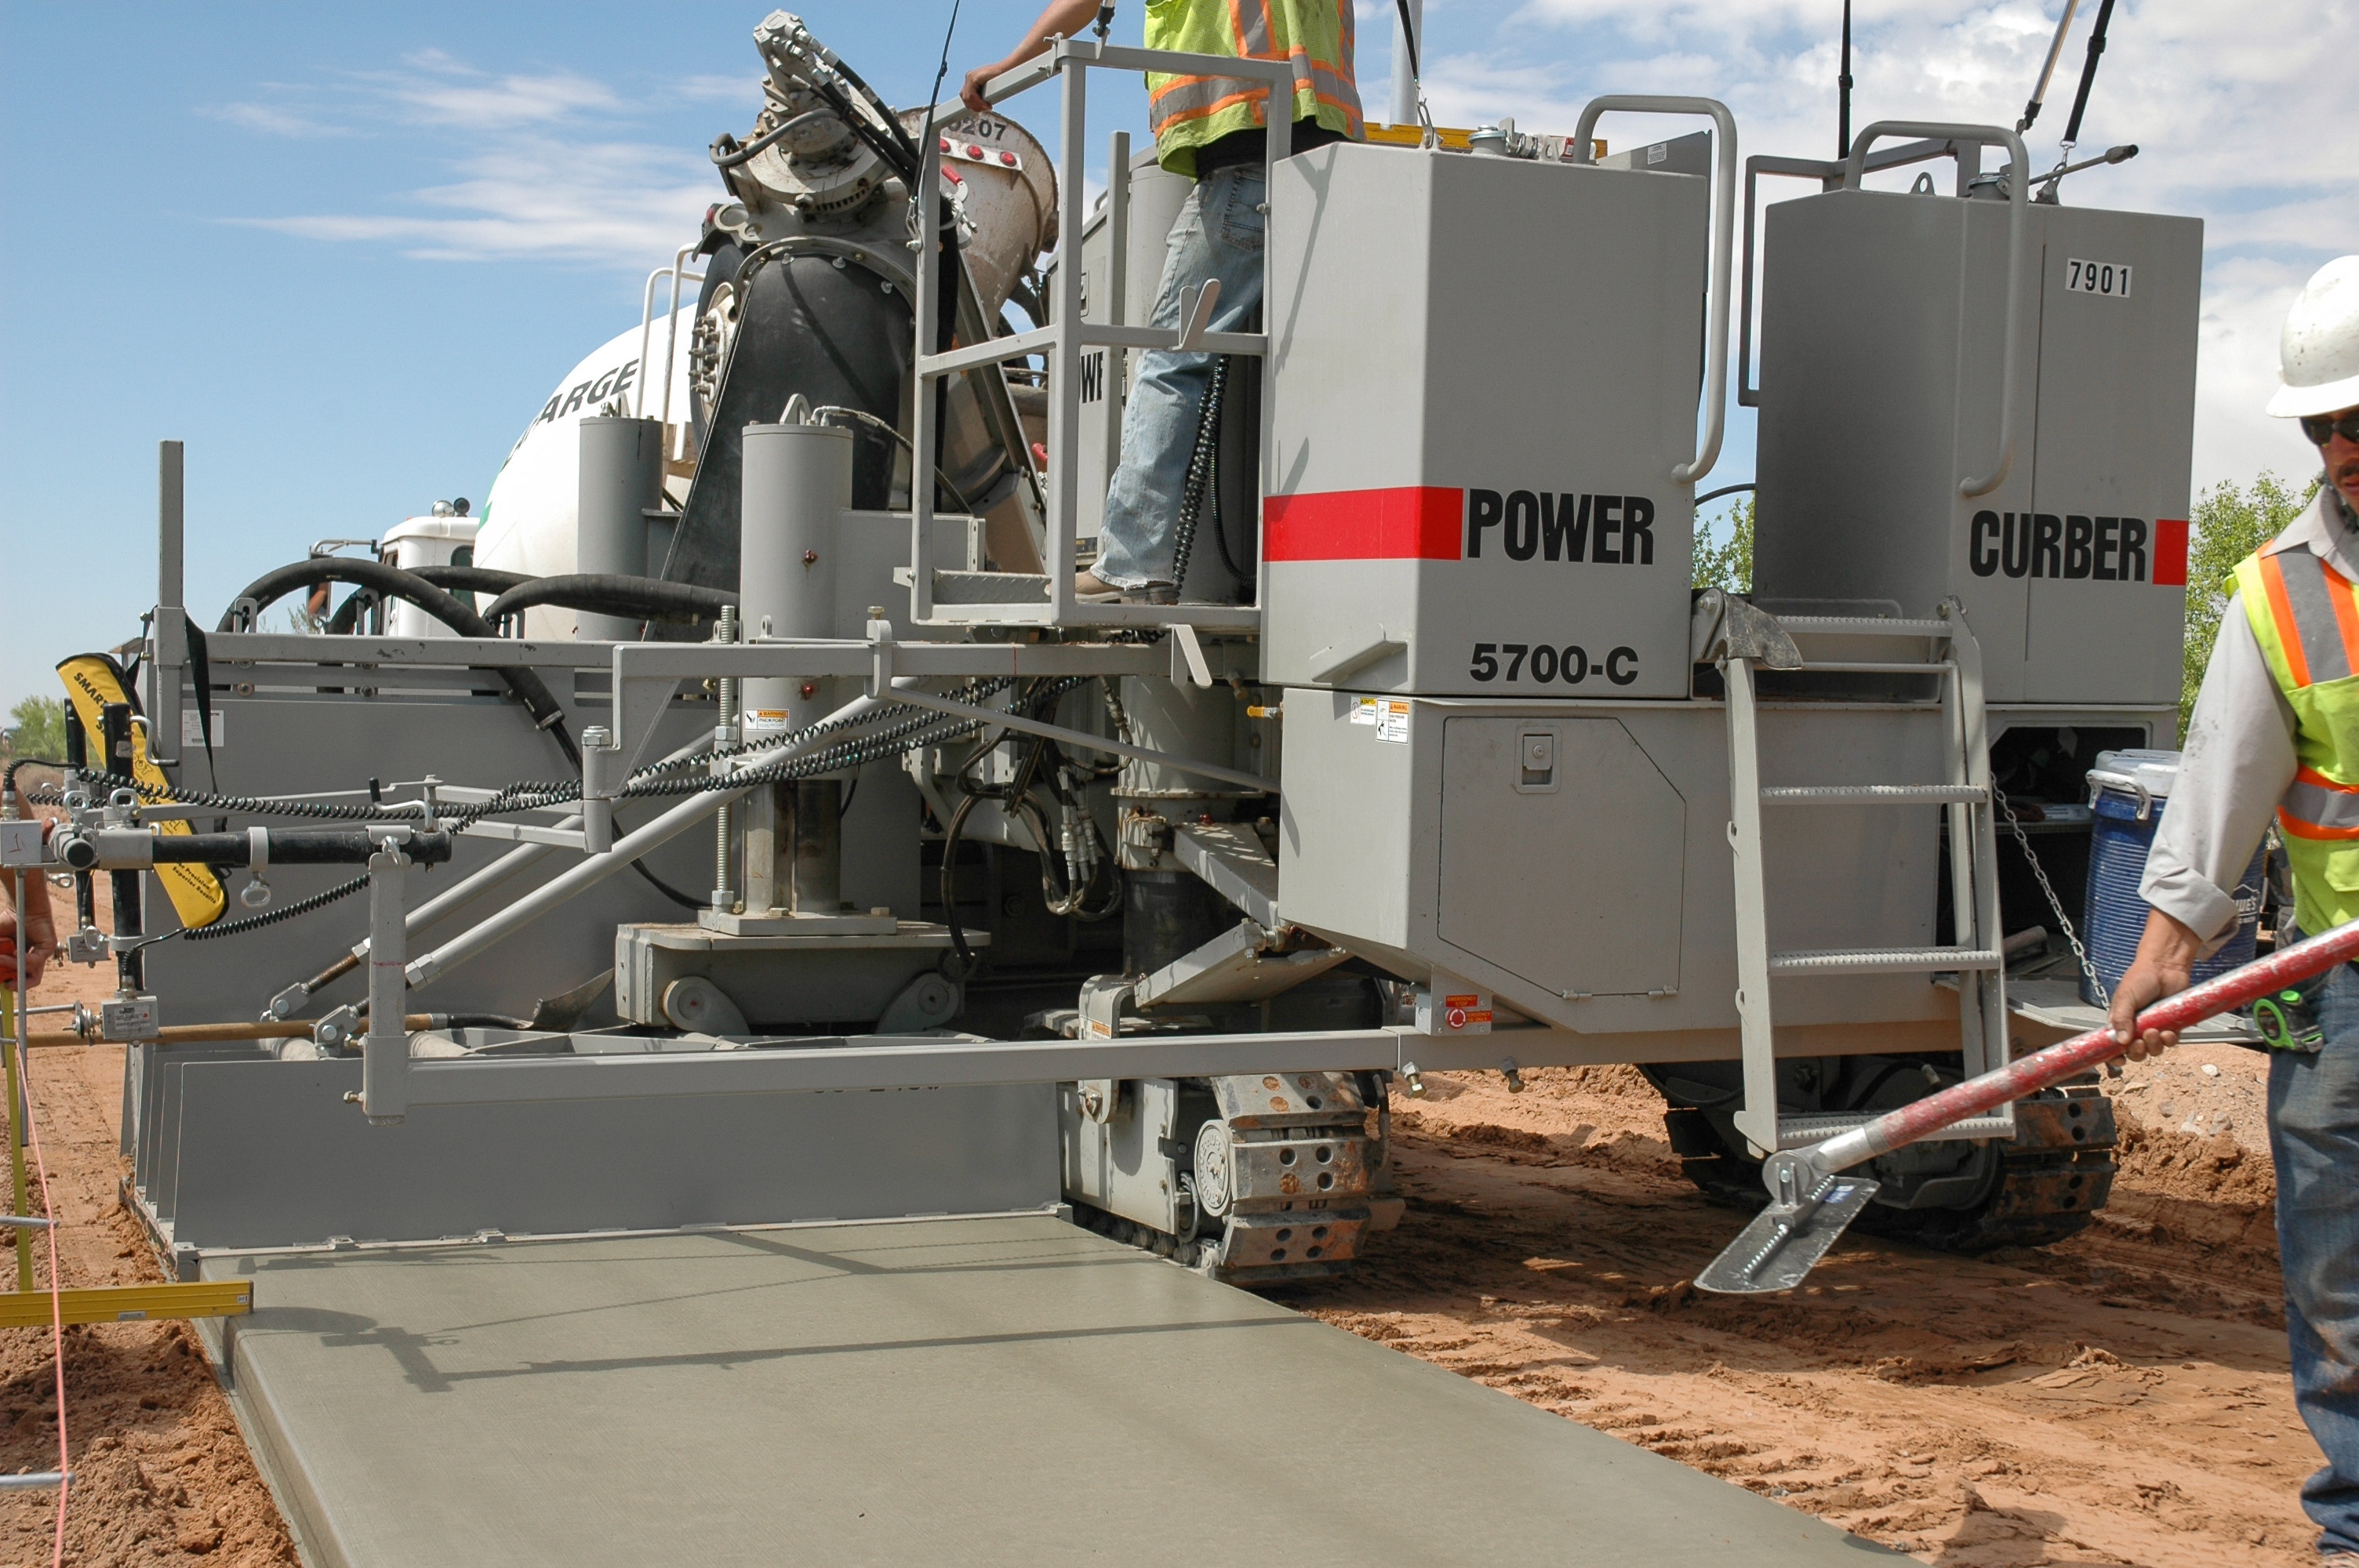 Asphalt contractor takes on concrete work - Power Curbers